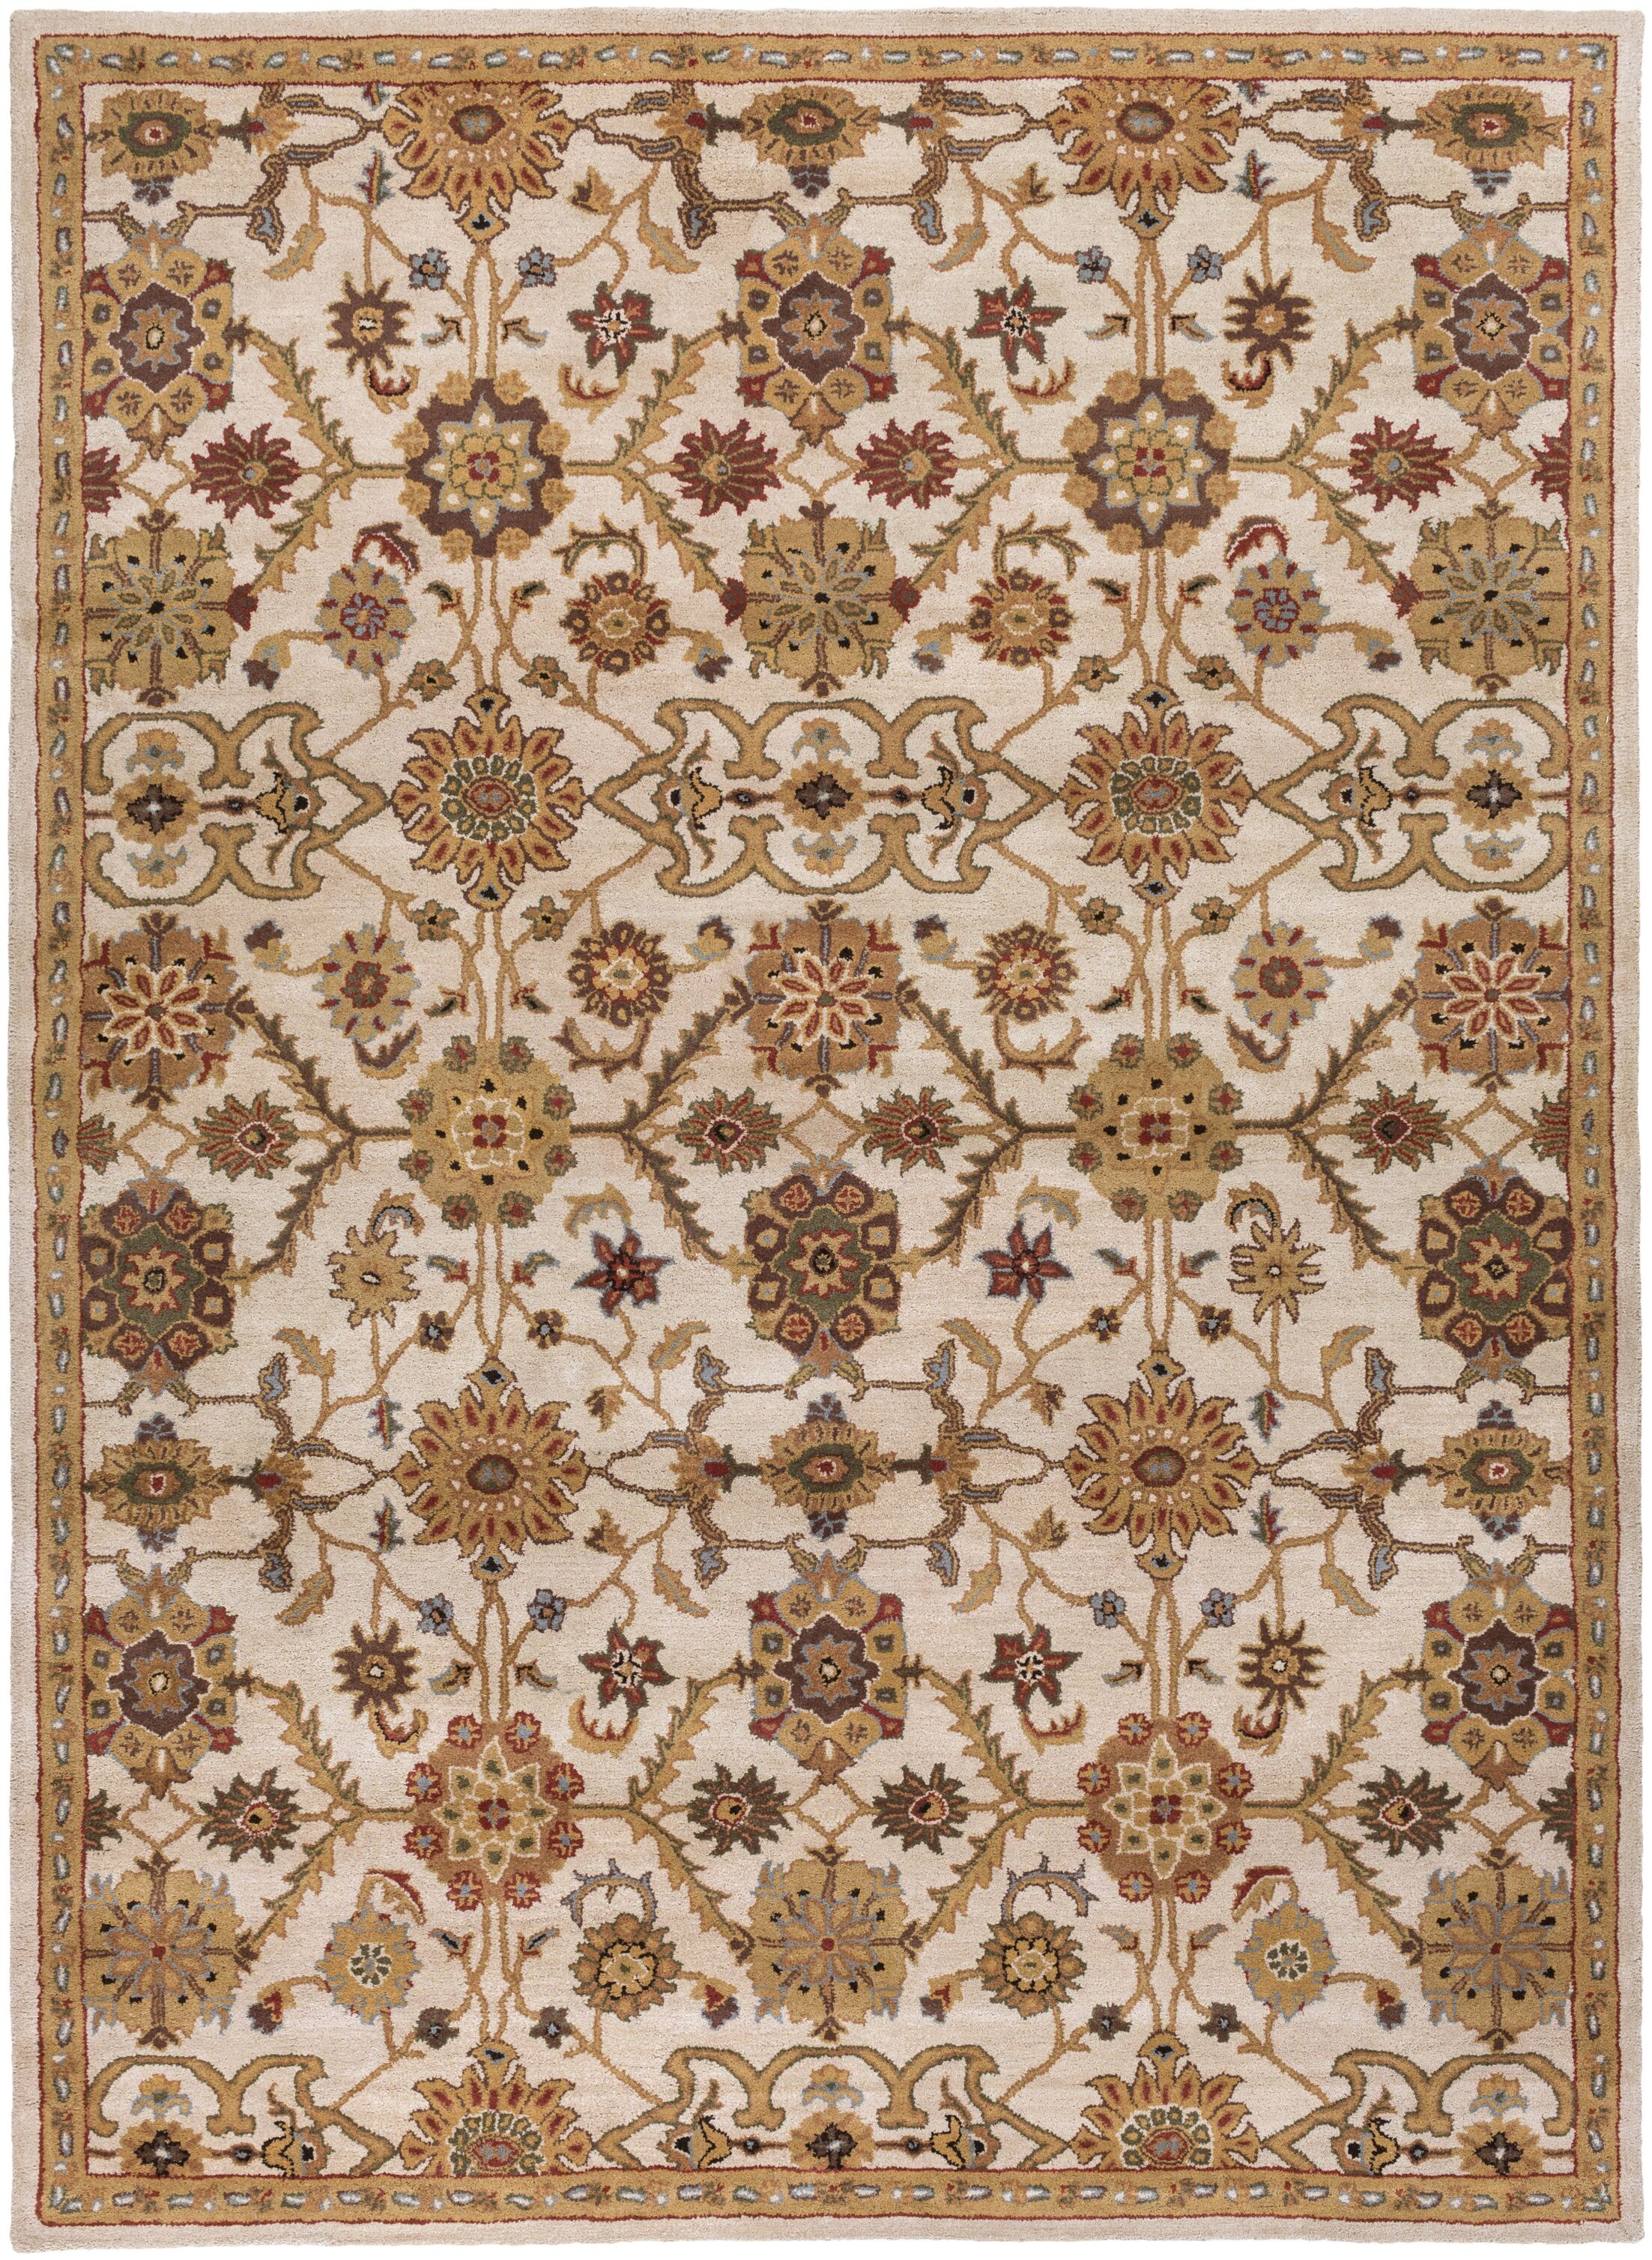 Philson Hand-Tufted Tan/Gray Area Rug Rug Size: Rectangle 7'6